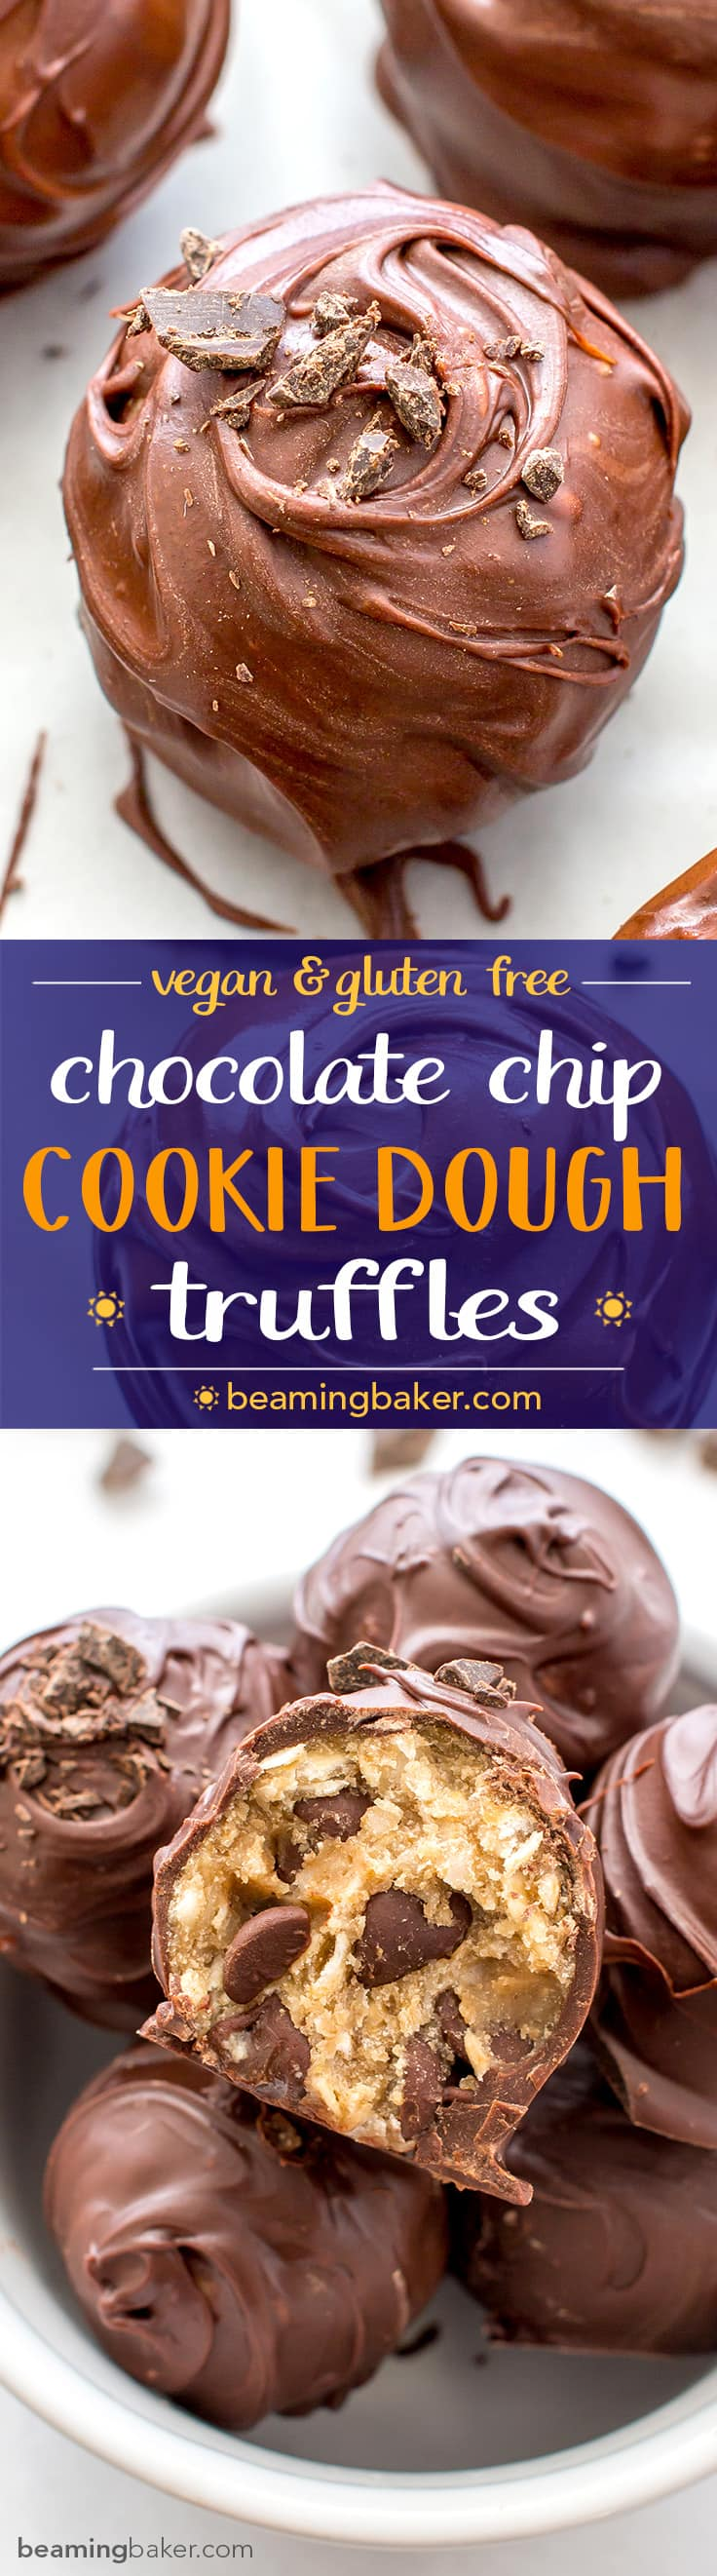 Chocolate Chip Cookie Dough Truffles (V+GF): Decadent chocolate chip cookie dough bites wrapped in a velvety blanket of rich, dark, indulgent chocolate. BEAMINGBAKER.COM. #Vegan #GlutenFree